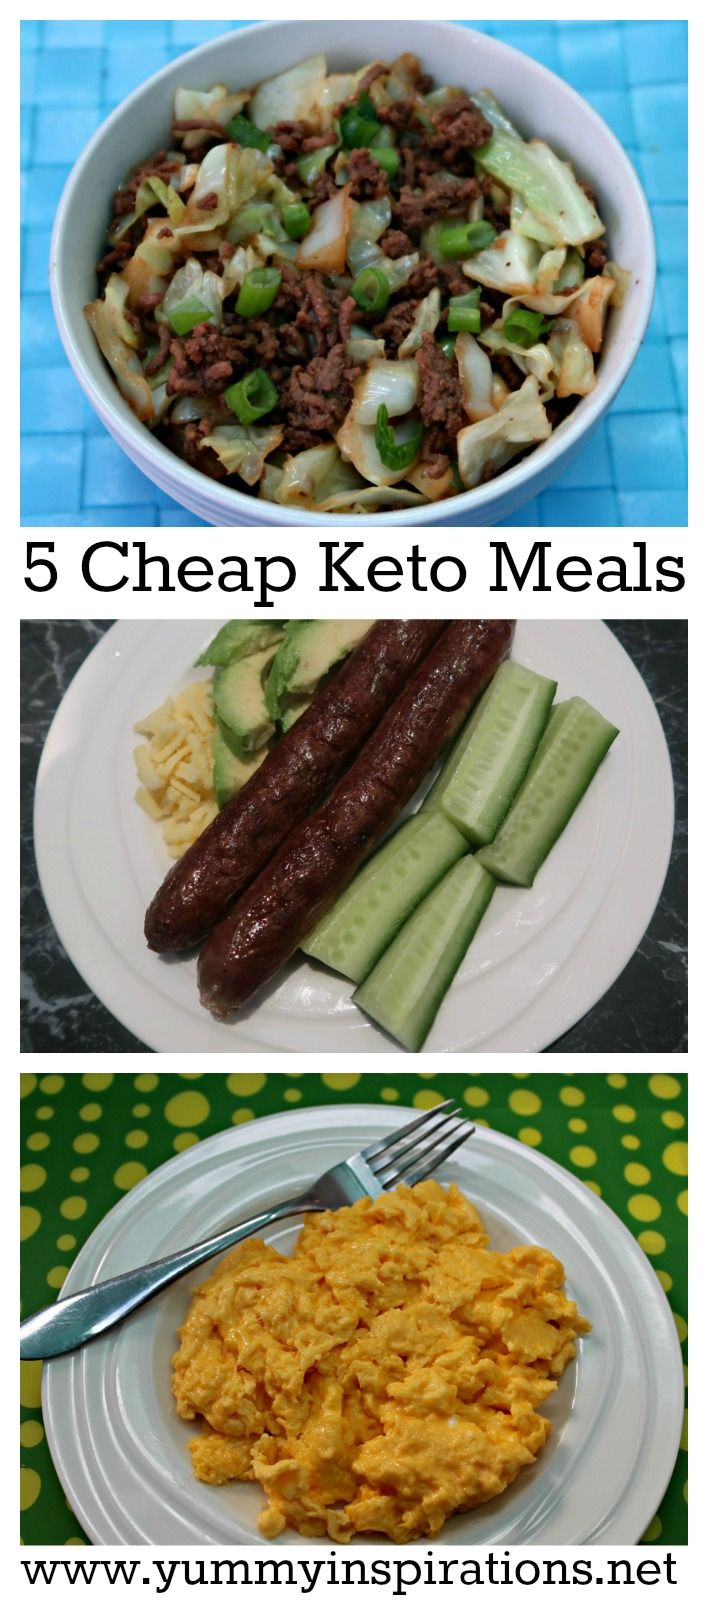 5 Cheap Keto Meals Budget Keto Diet Foods Recipes For Dinners And Meals A Collection Of Yummy Healthy Low Carb Recipes Diet Meal Plans Ketogenic Recipes